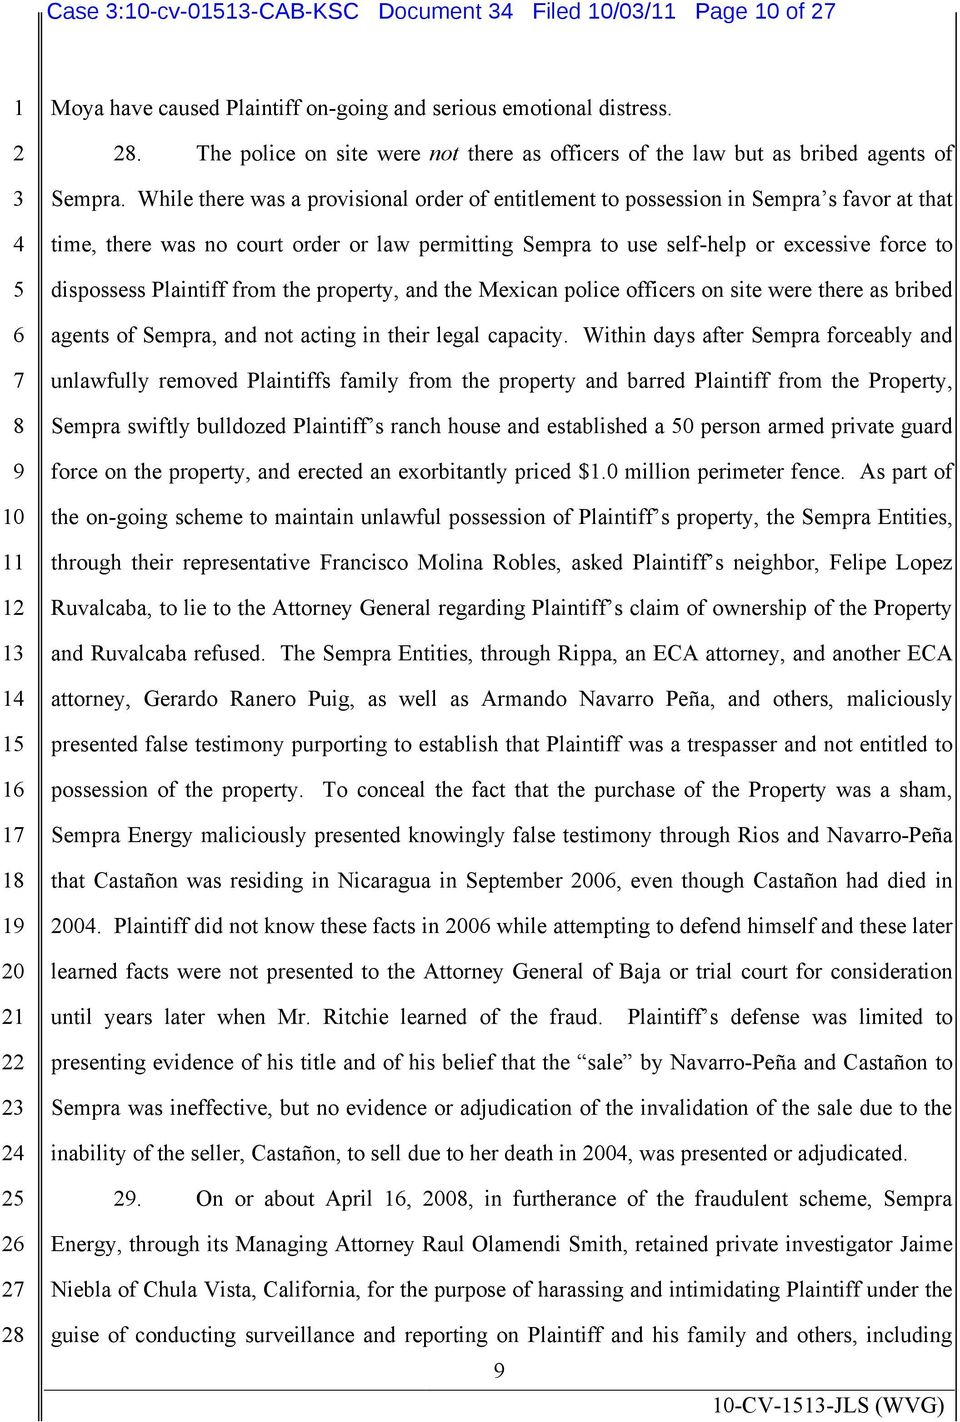 While there was a provisional order of entitlement to possession in Sempra s favor at that time, there was no court order or law permitting Sempra to use self-help or excessive force to dispossess